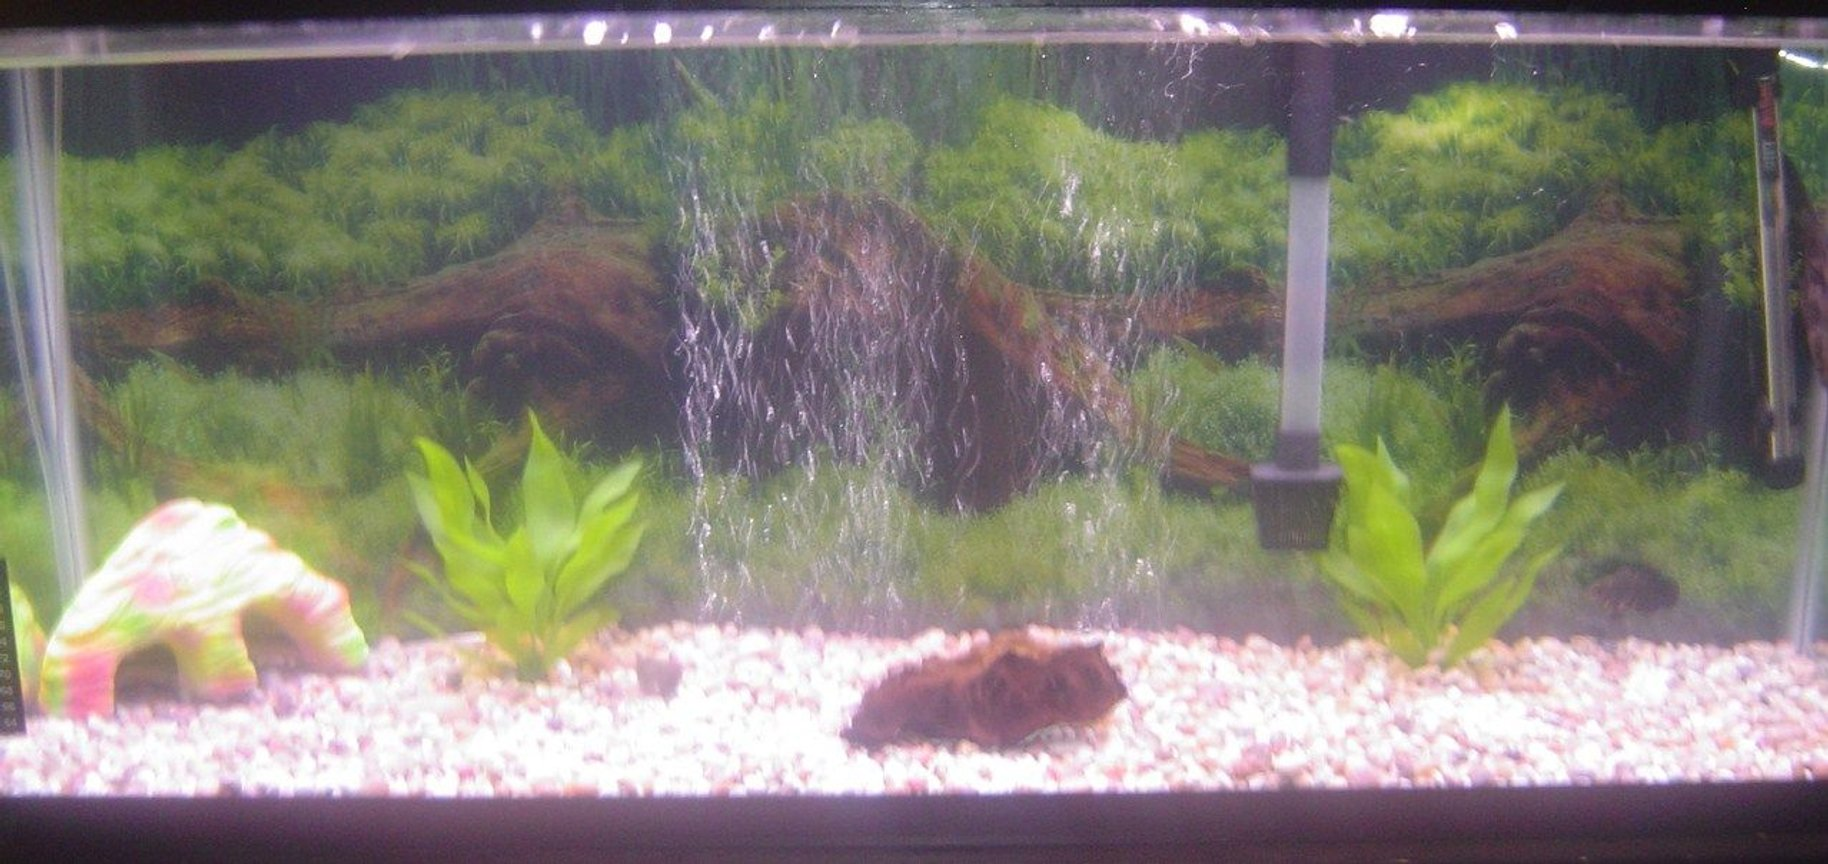 55 gallons freshwater fish tank (mostly fish and non-living decorations) - 55 gallon freshwater tank. Large bubble screen under rocks, small drift wood two artificial plants. The gravel is natural and the filter is a 30-60. Fish in the tank, 1 trinidad pleco and 1 small tiger oscar.